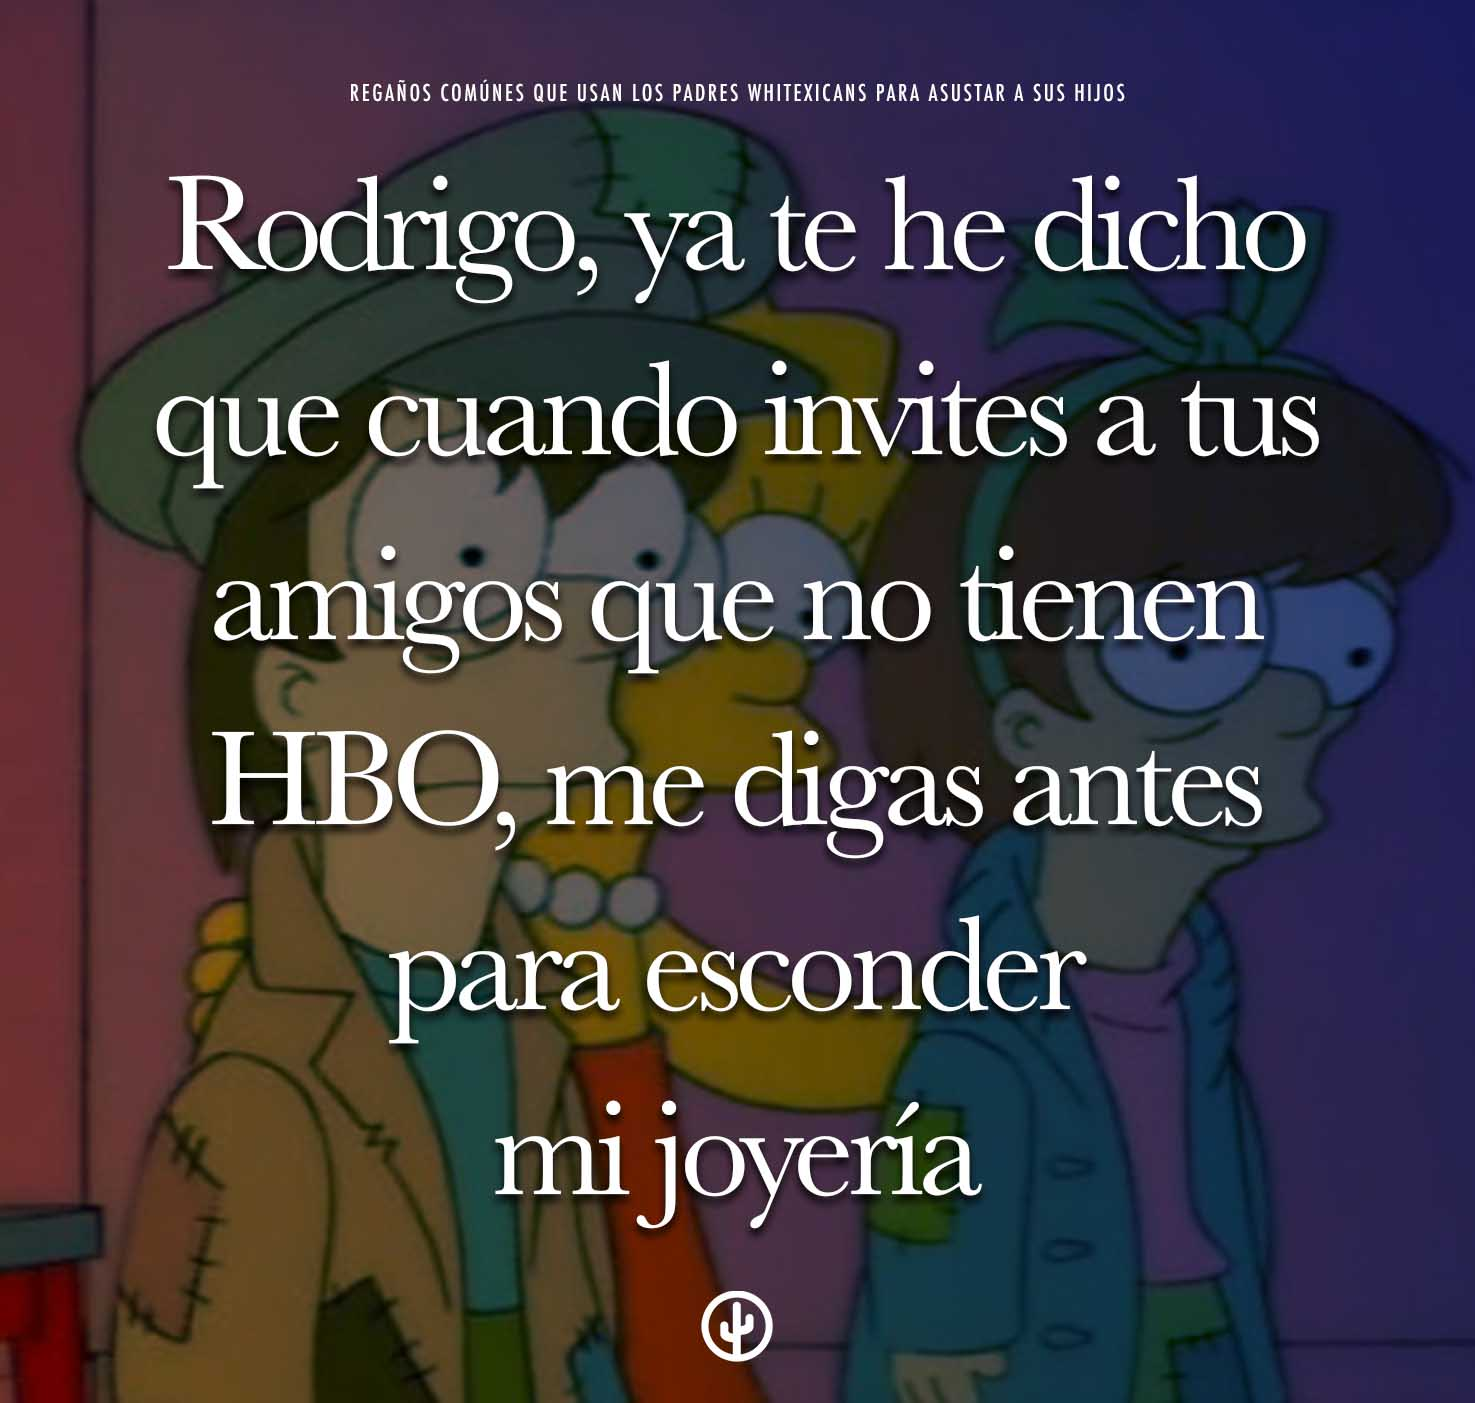 HBO Whitexicans